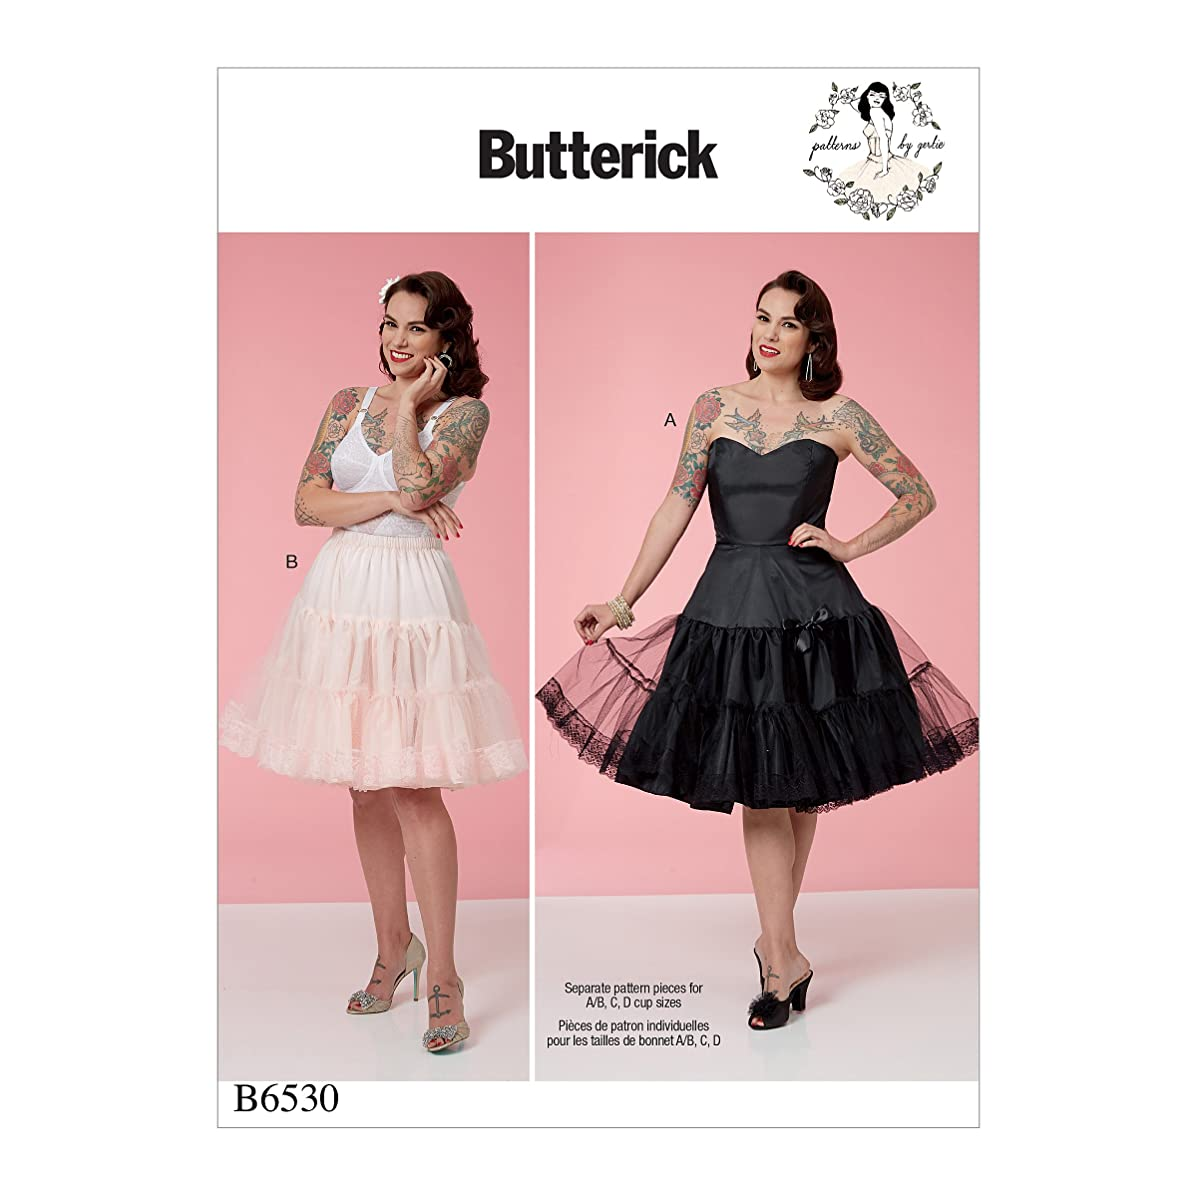 Butterick Patterns B6530A50 Misses' Full Slip and Petticoat A5 (6-8-10-12-14)